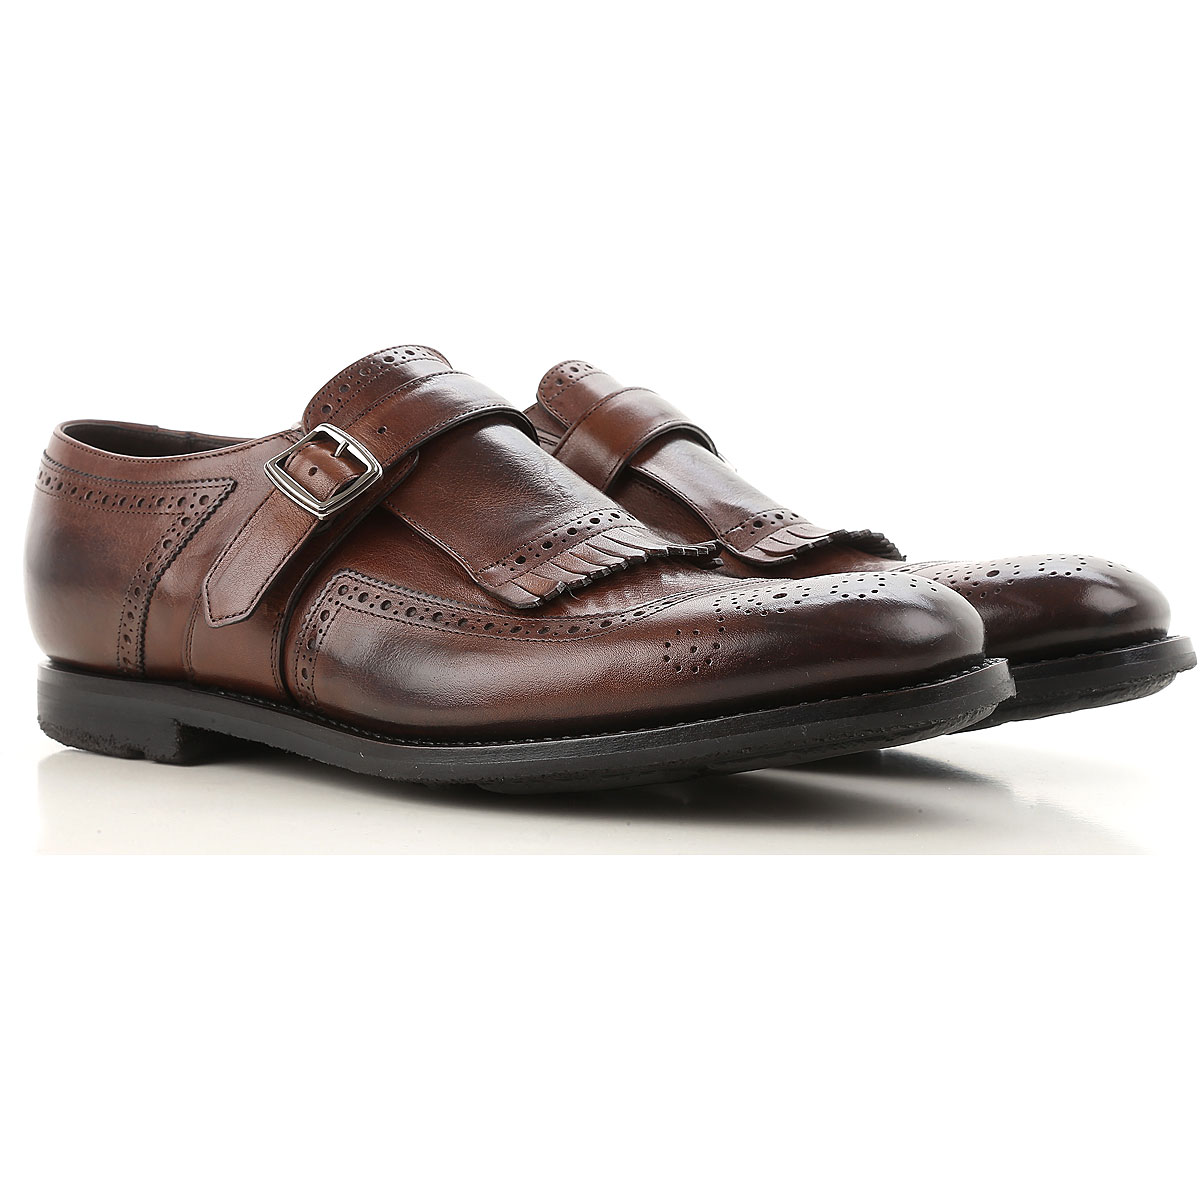 Image of Church's Monk Strap Shoes for Men On Sale, Burnt, Leather, 2017, 10 7 7.5 8 8.5 9